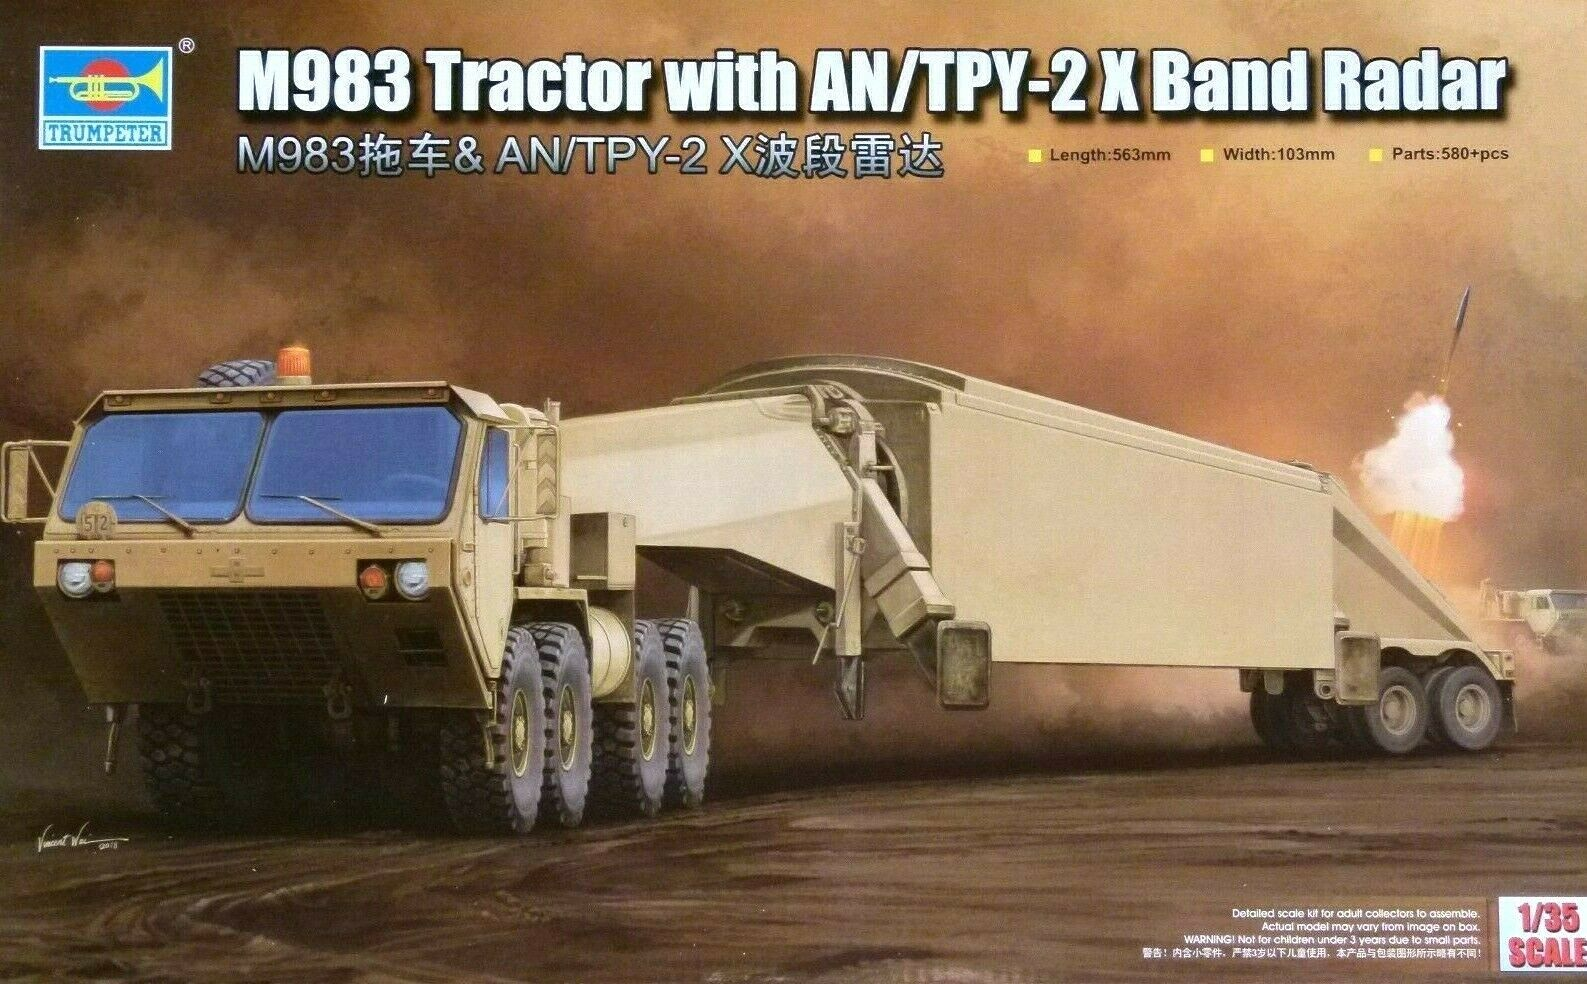 Trumpeter 1 35 M983 Tractor With AN TPY-2X Band Radar Vehicle Model Kit